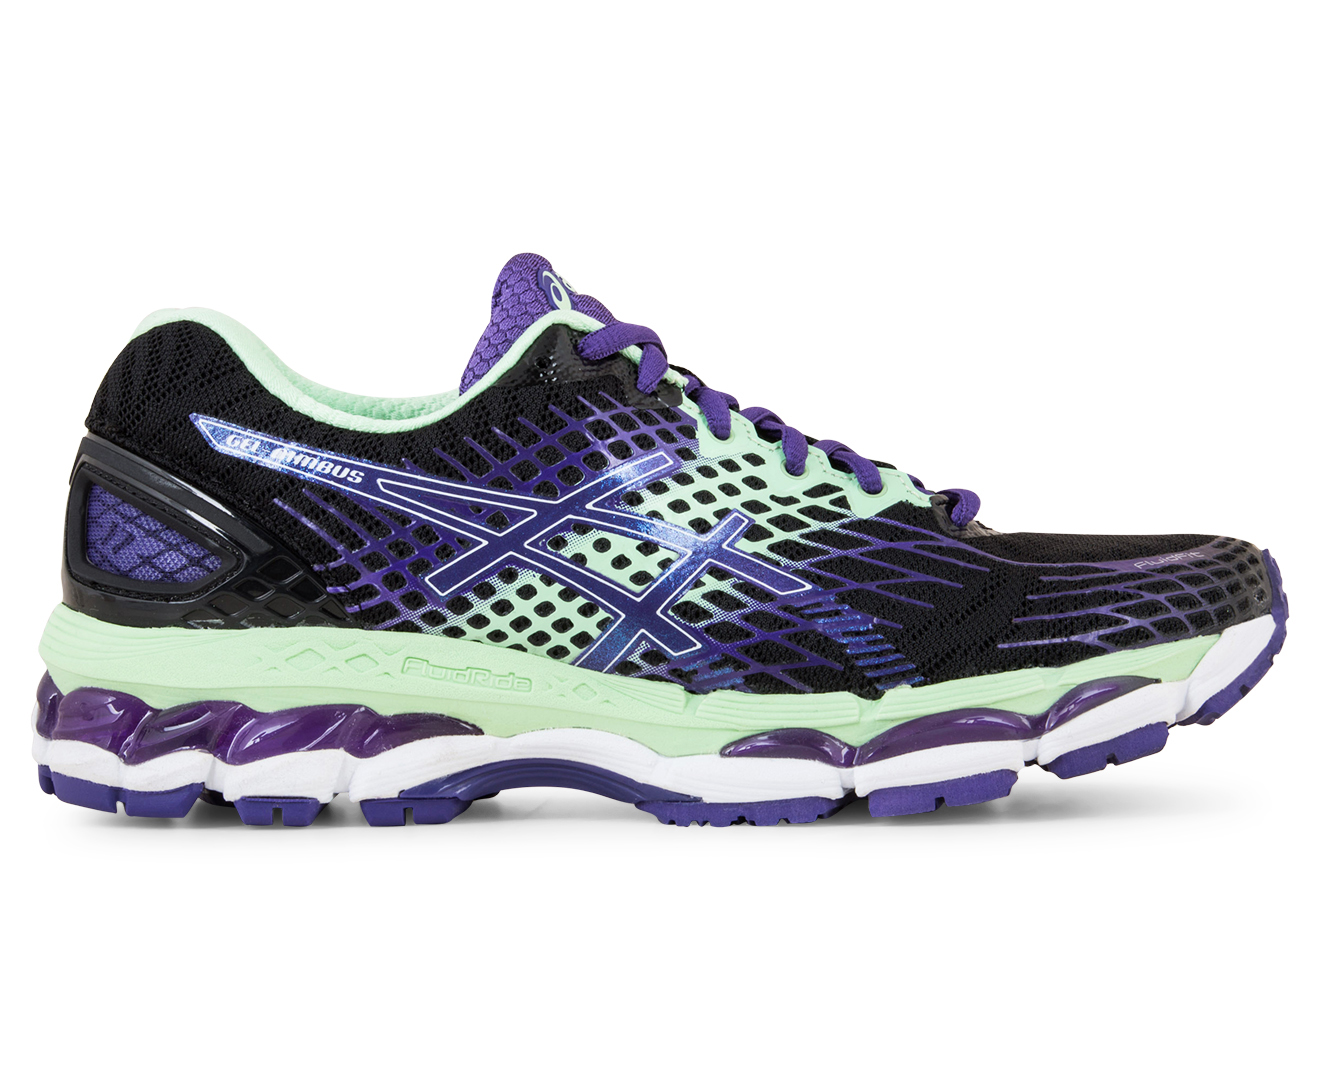 asics gel kayano 17 onyx/purple/mint